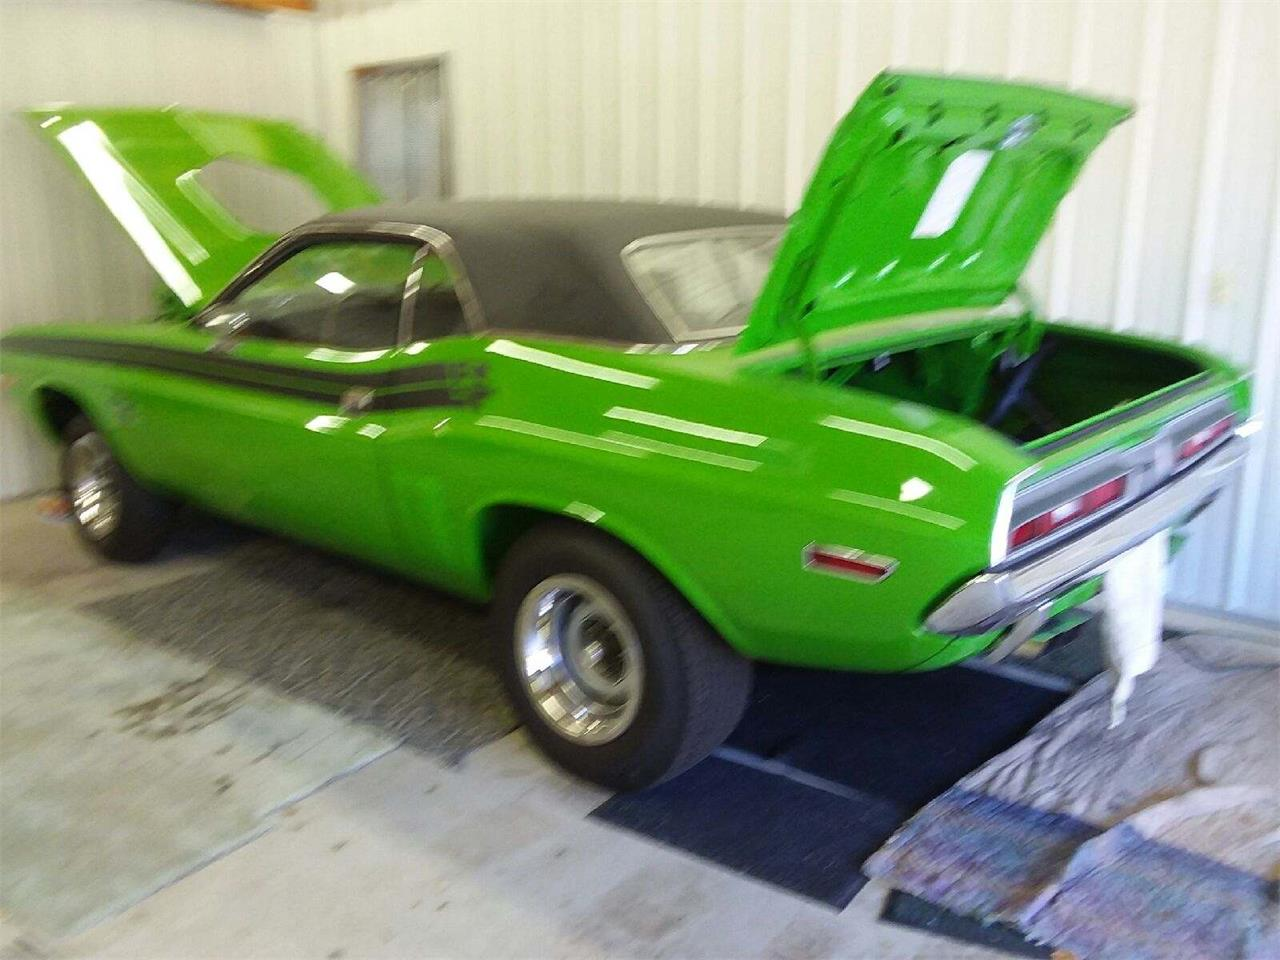 1971 Dodge Challenger R/T for sale in Waterford, PA – photo 18